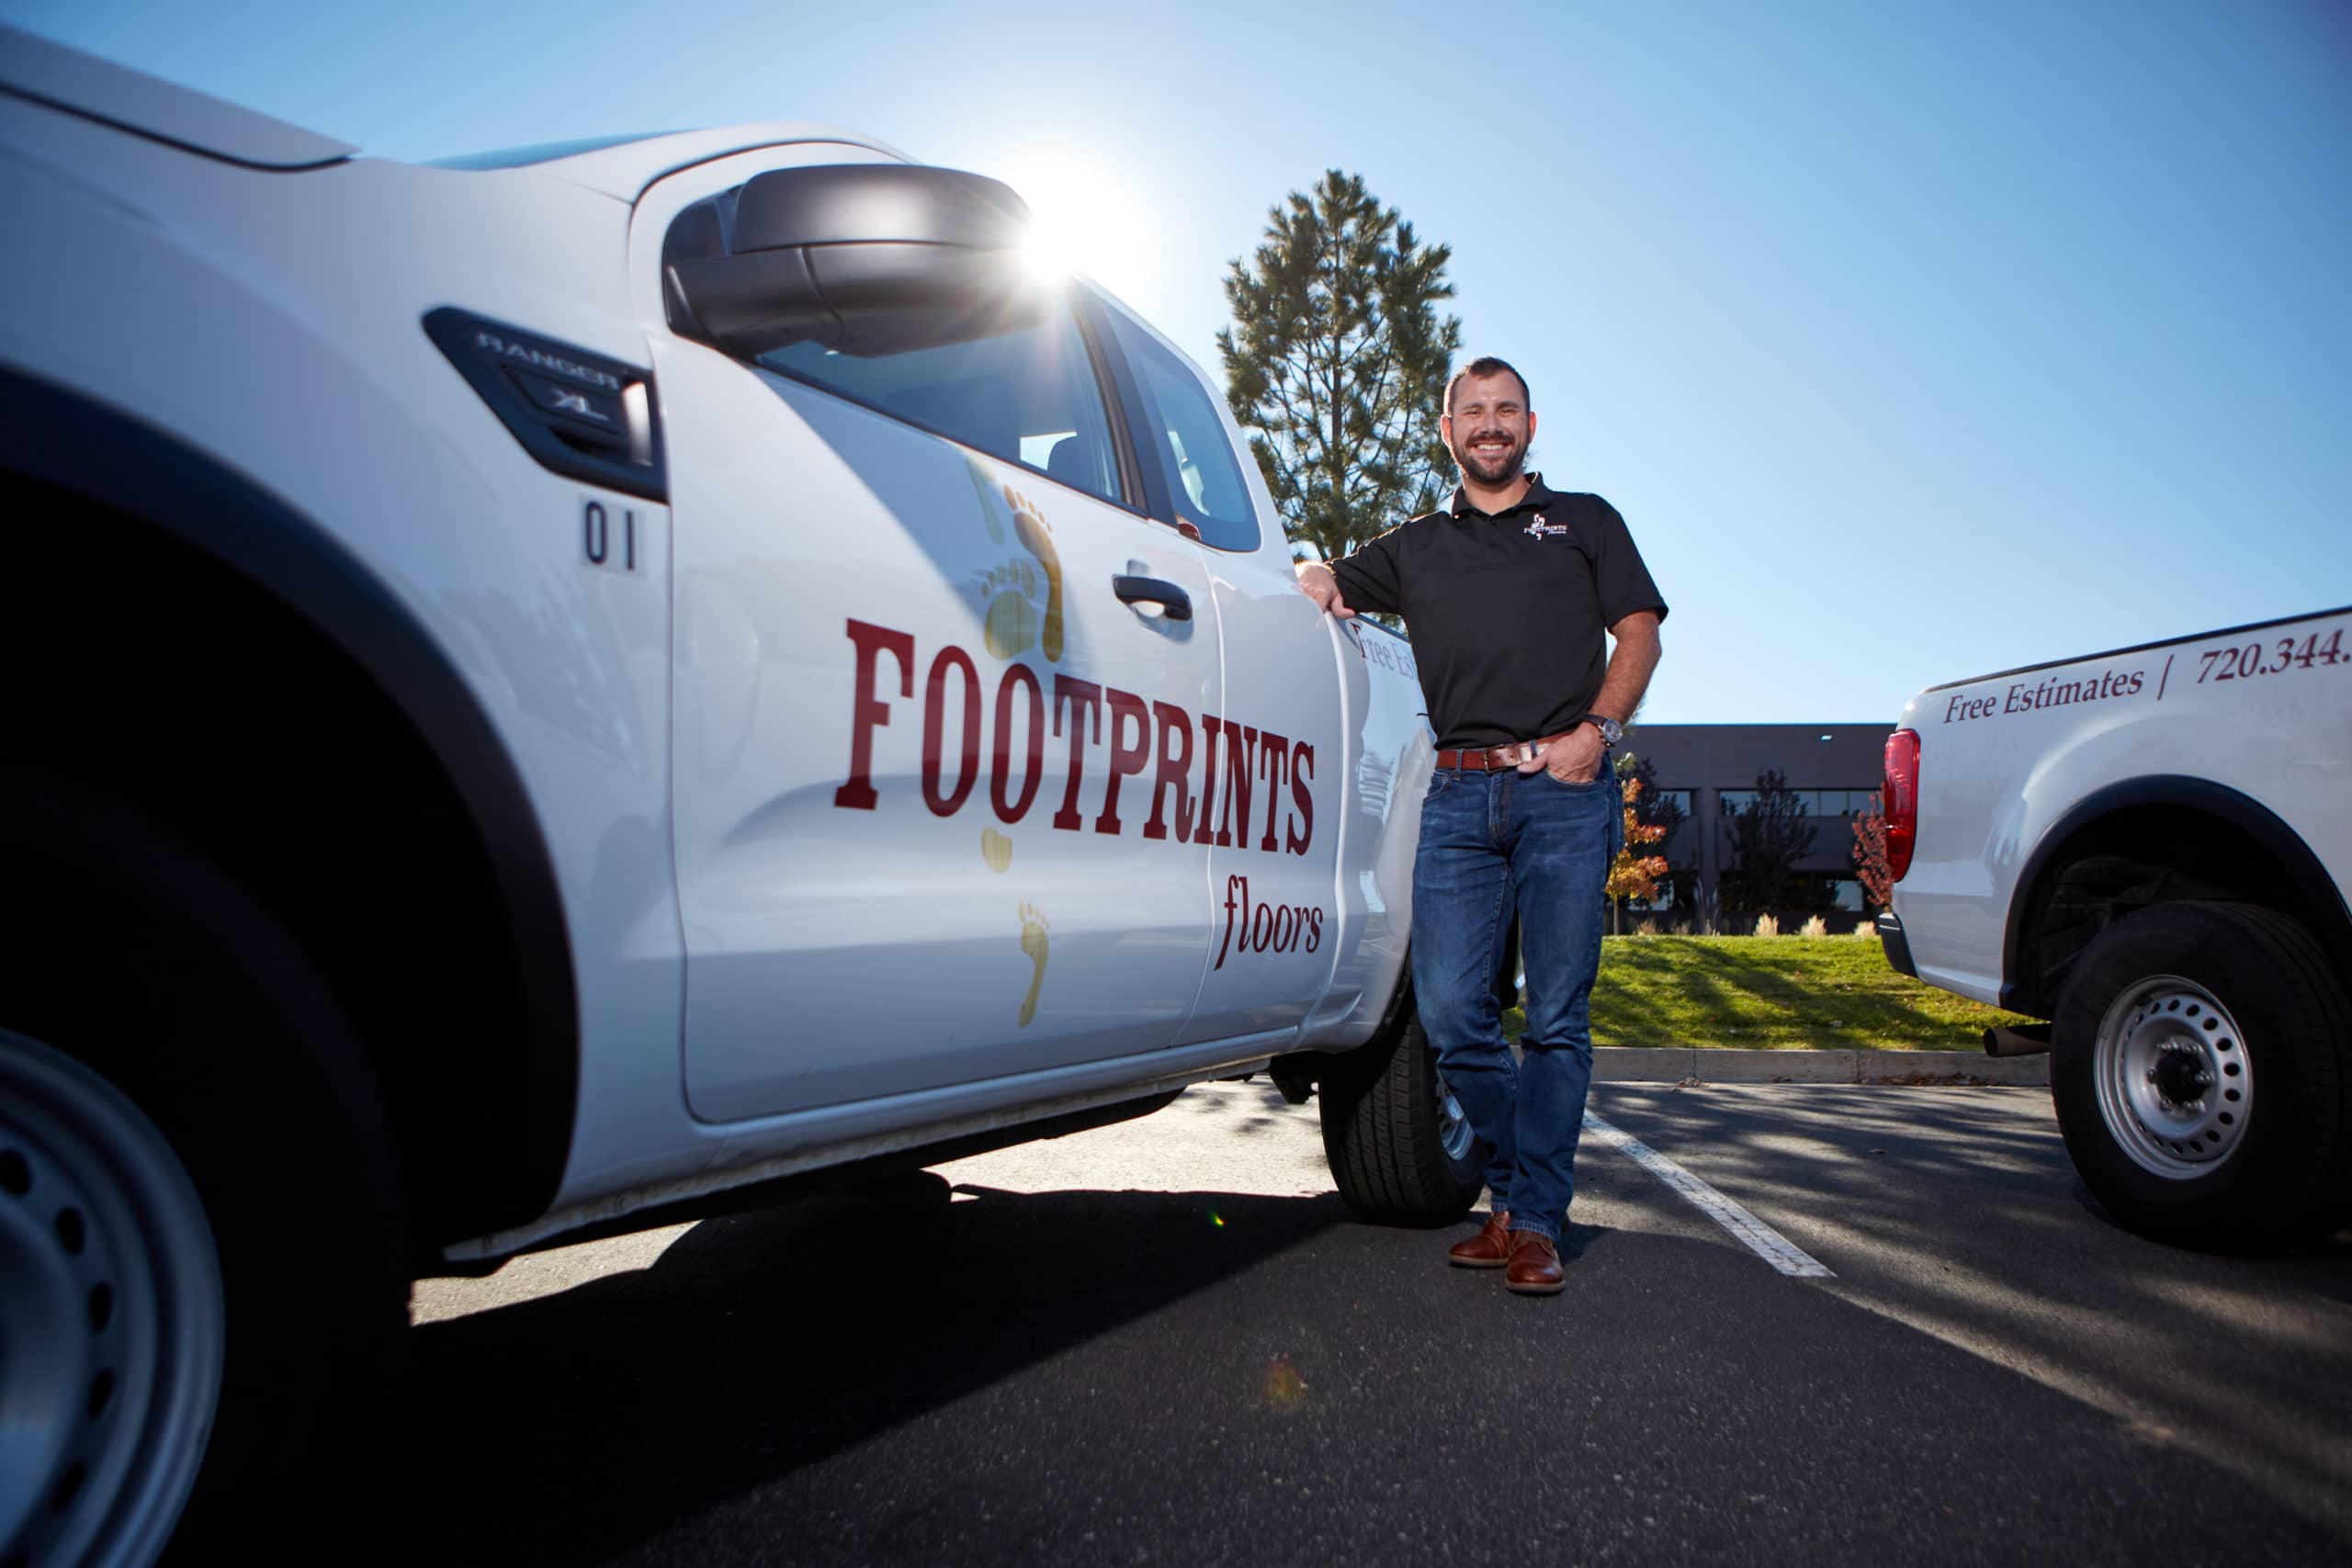 Home improvement Franchise Owner by truck